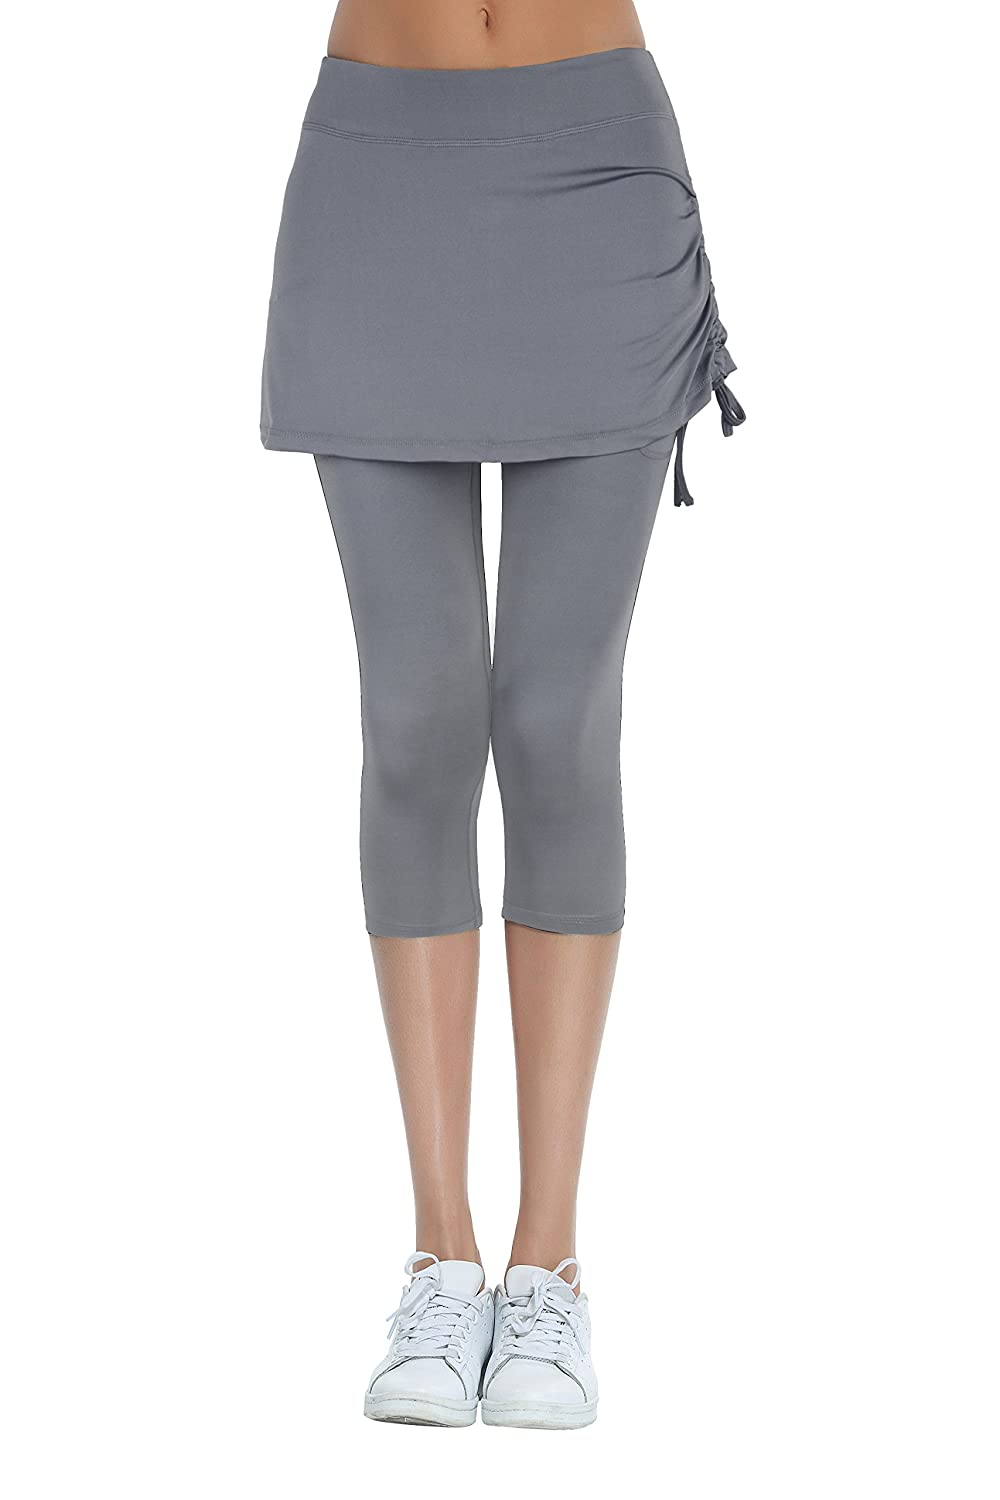 HonourSport Donna leggings con gonna Gonna da tennis pantaloni capri 2 in 1